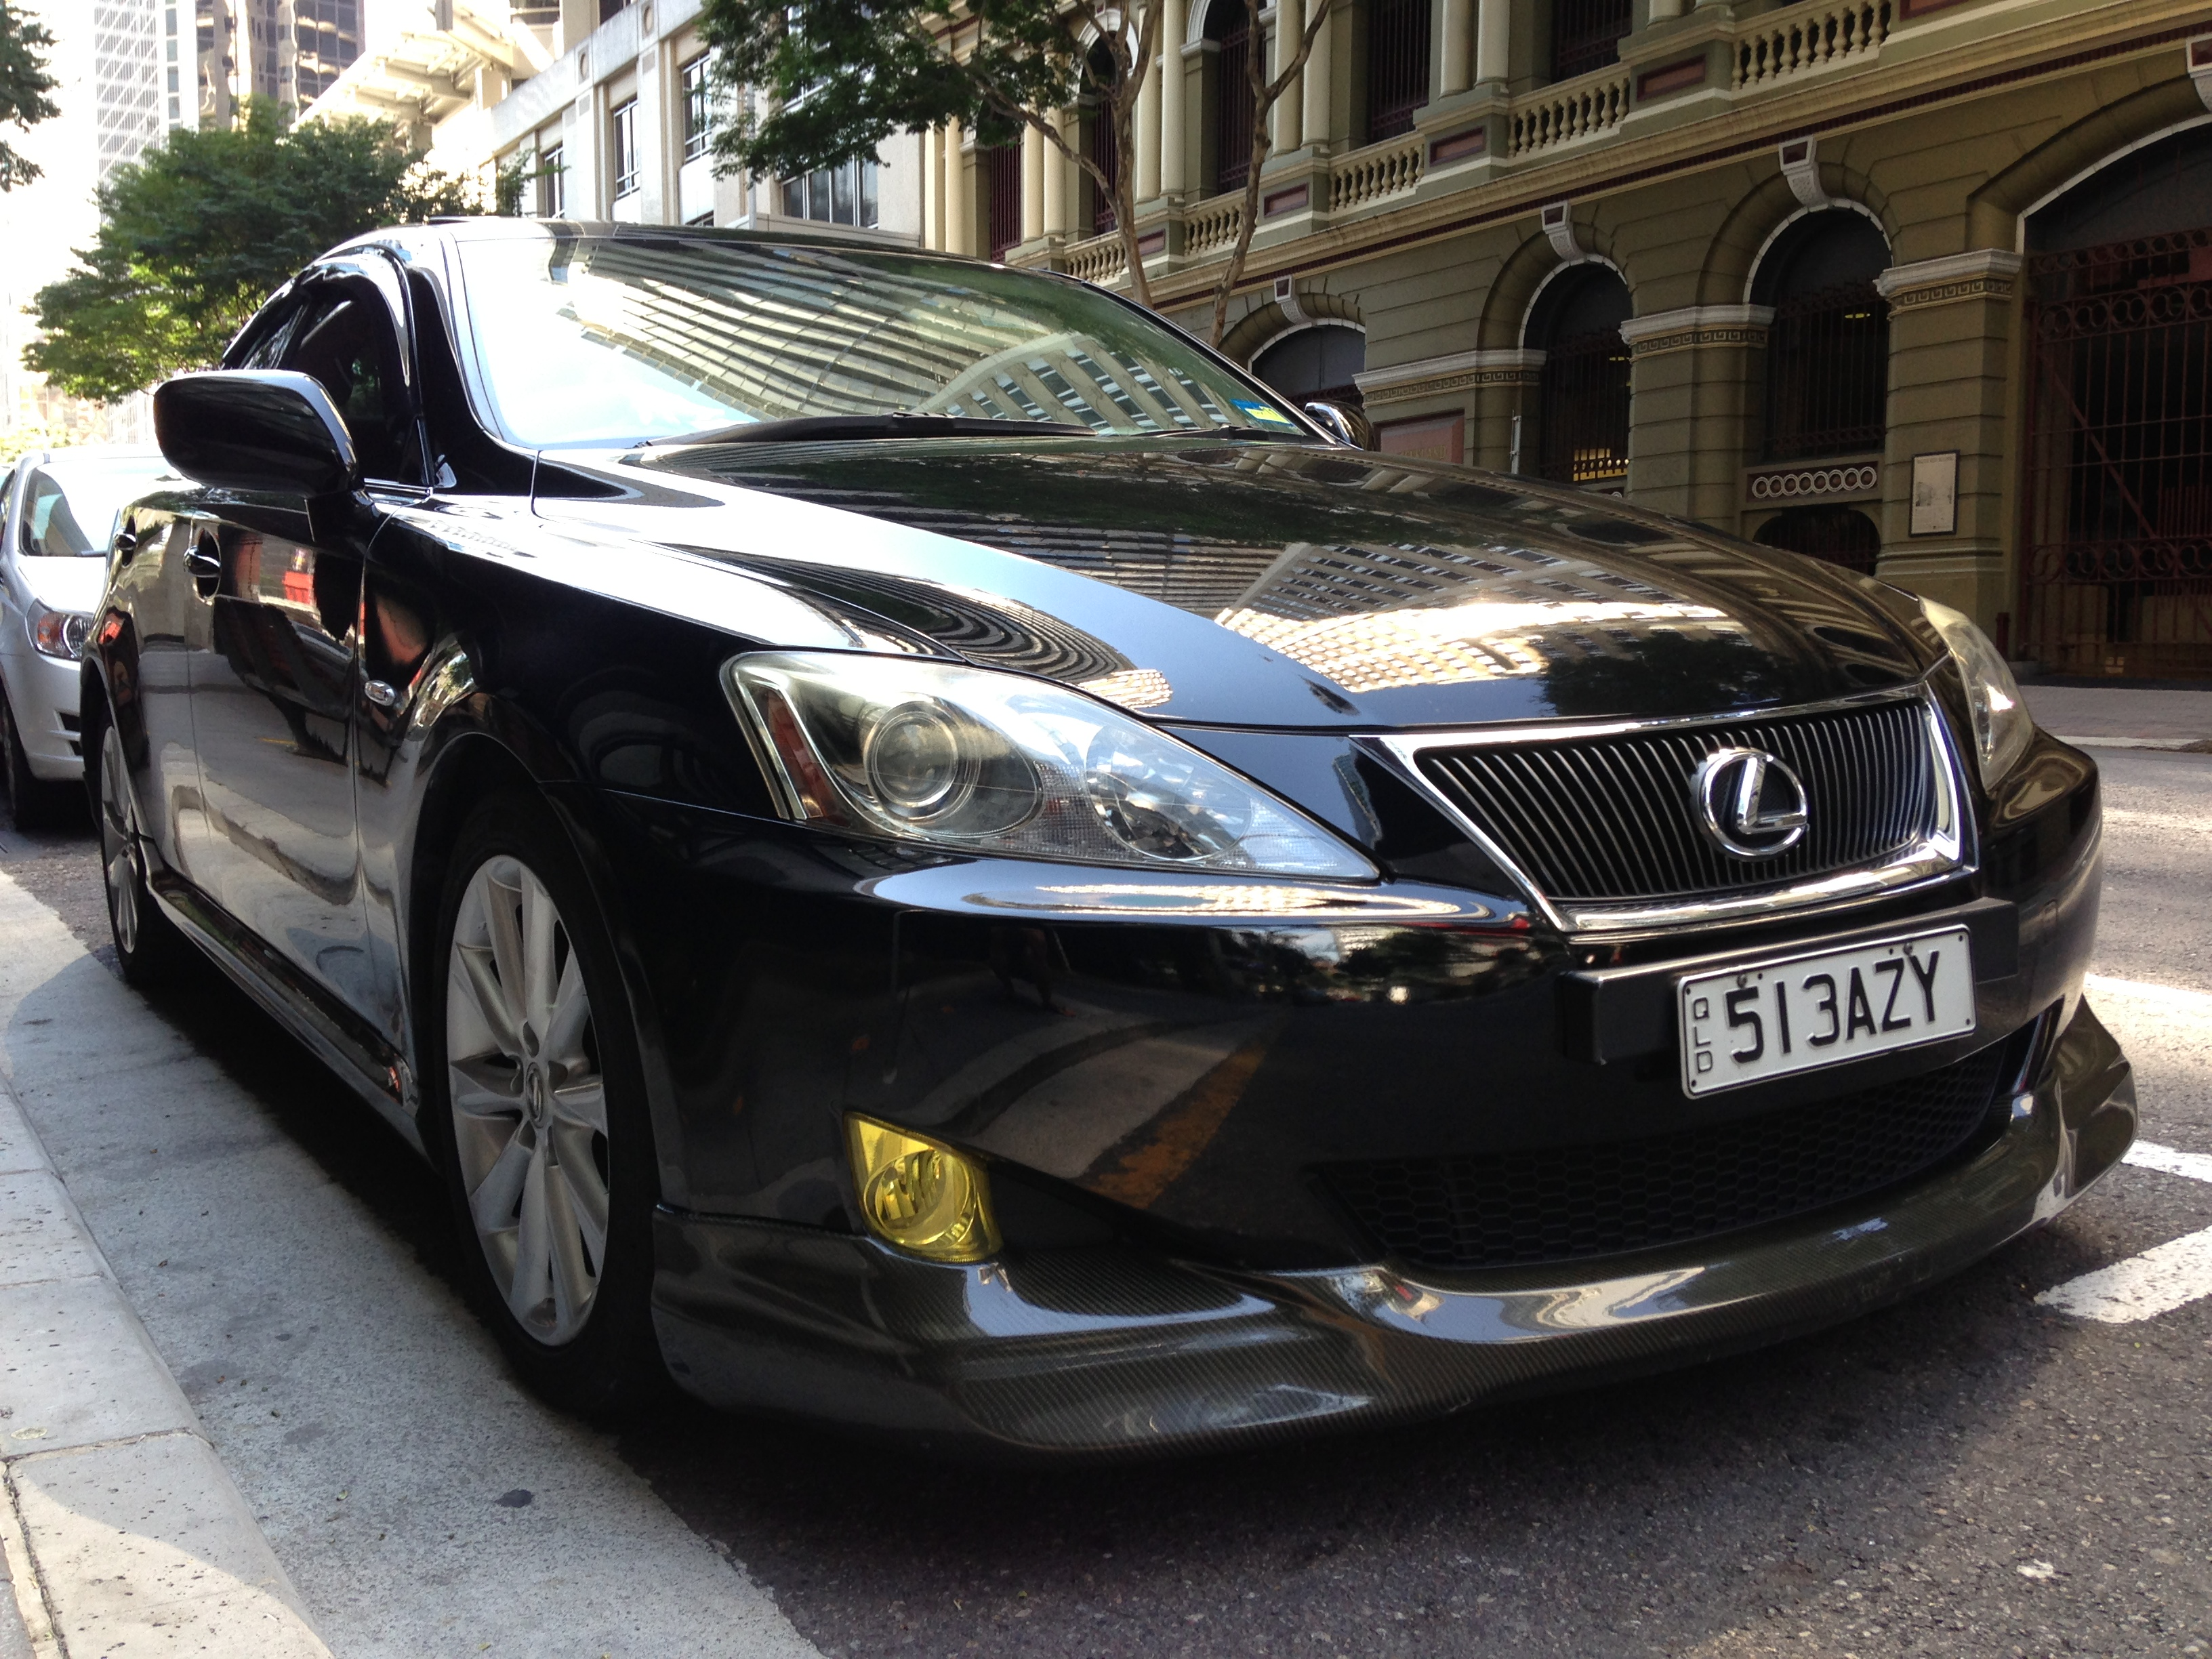 2005 Lexus IS250 Prestige GSE20R 08 Upgrade ...